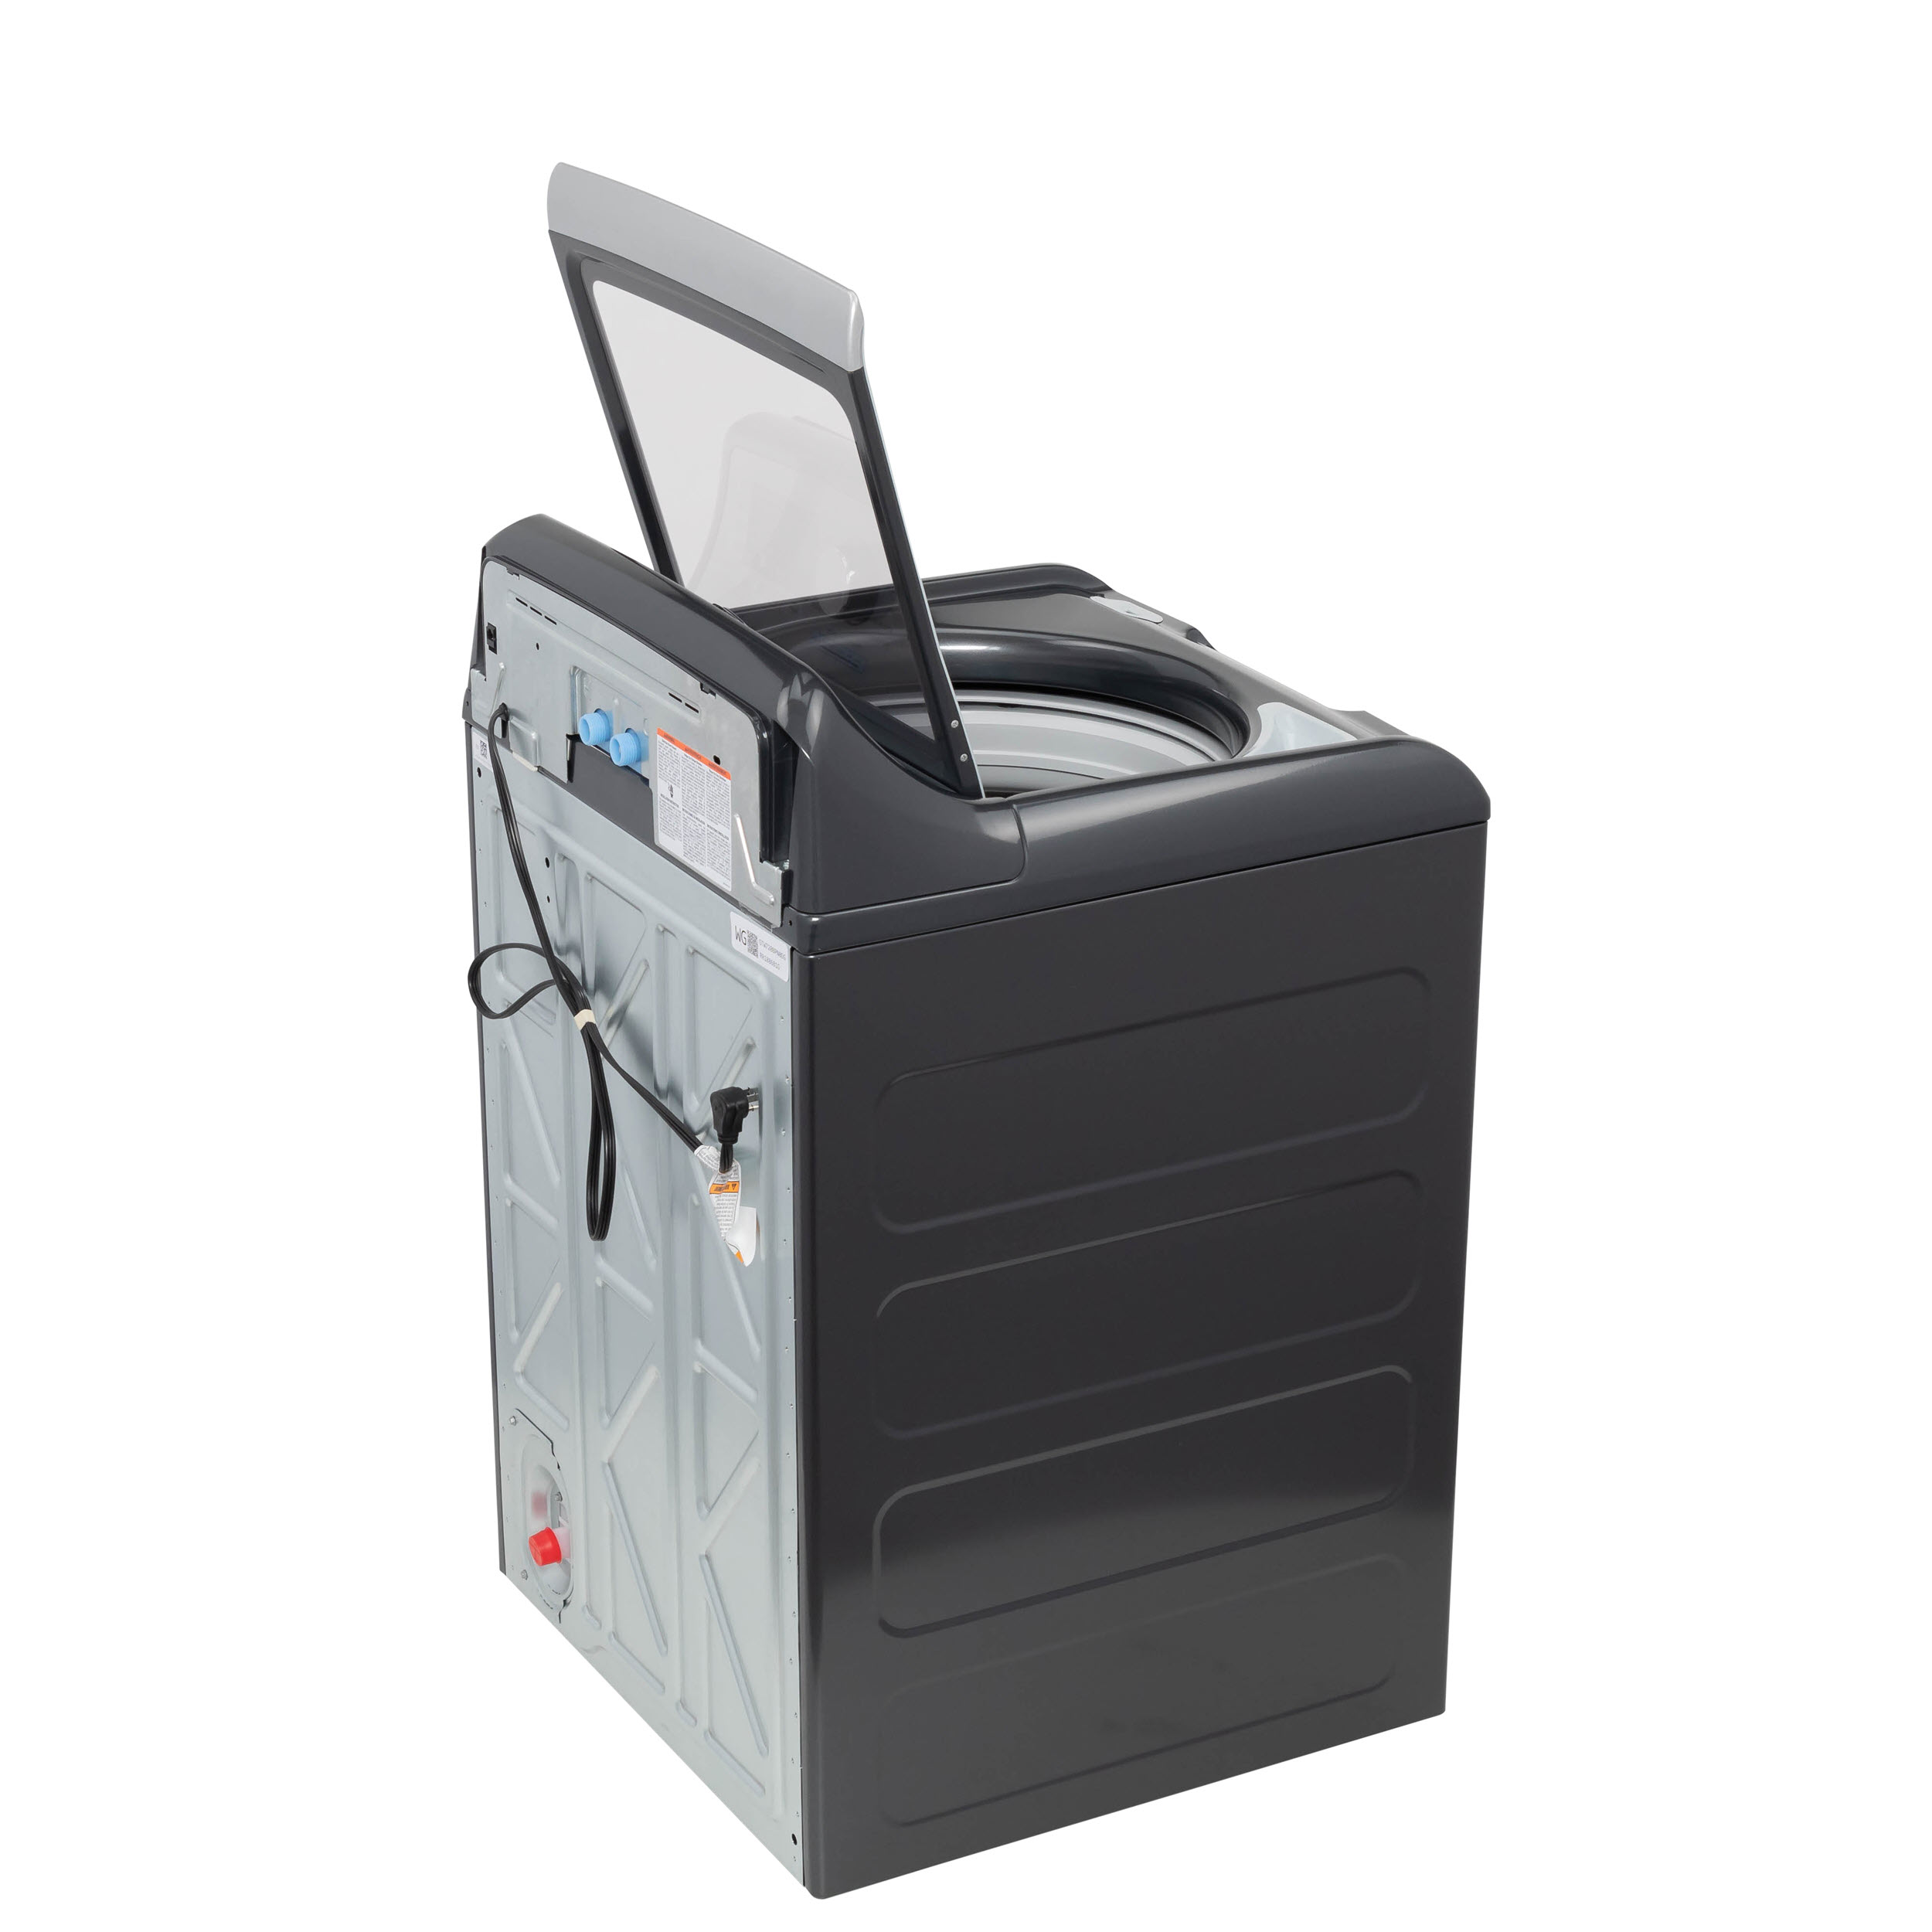 Model: GTW720BPNDG | GE GE® 4.8  cu. ft. Capacity Washer with Sanitize w/Oxi and FlexDispense®